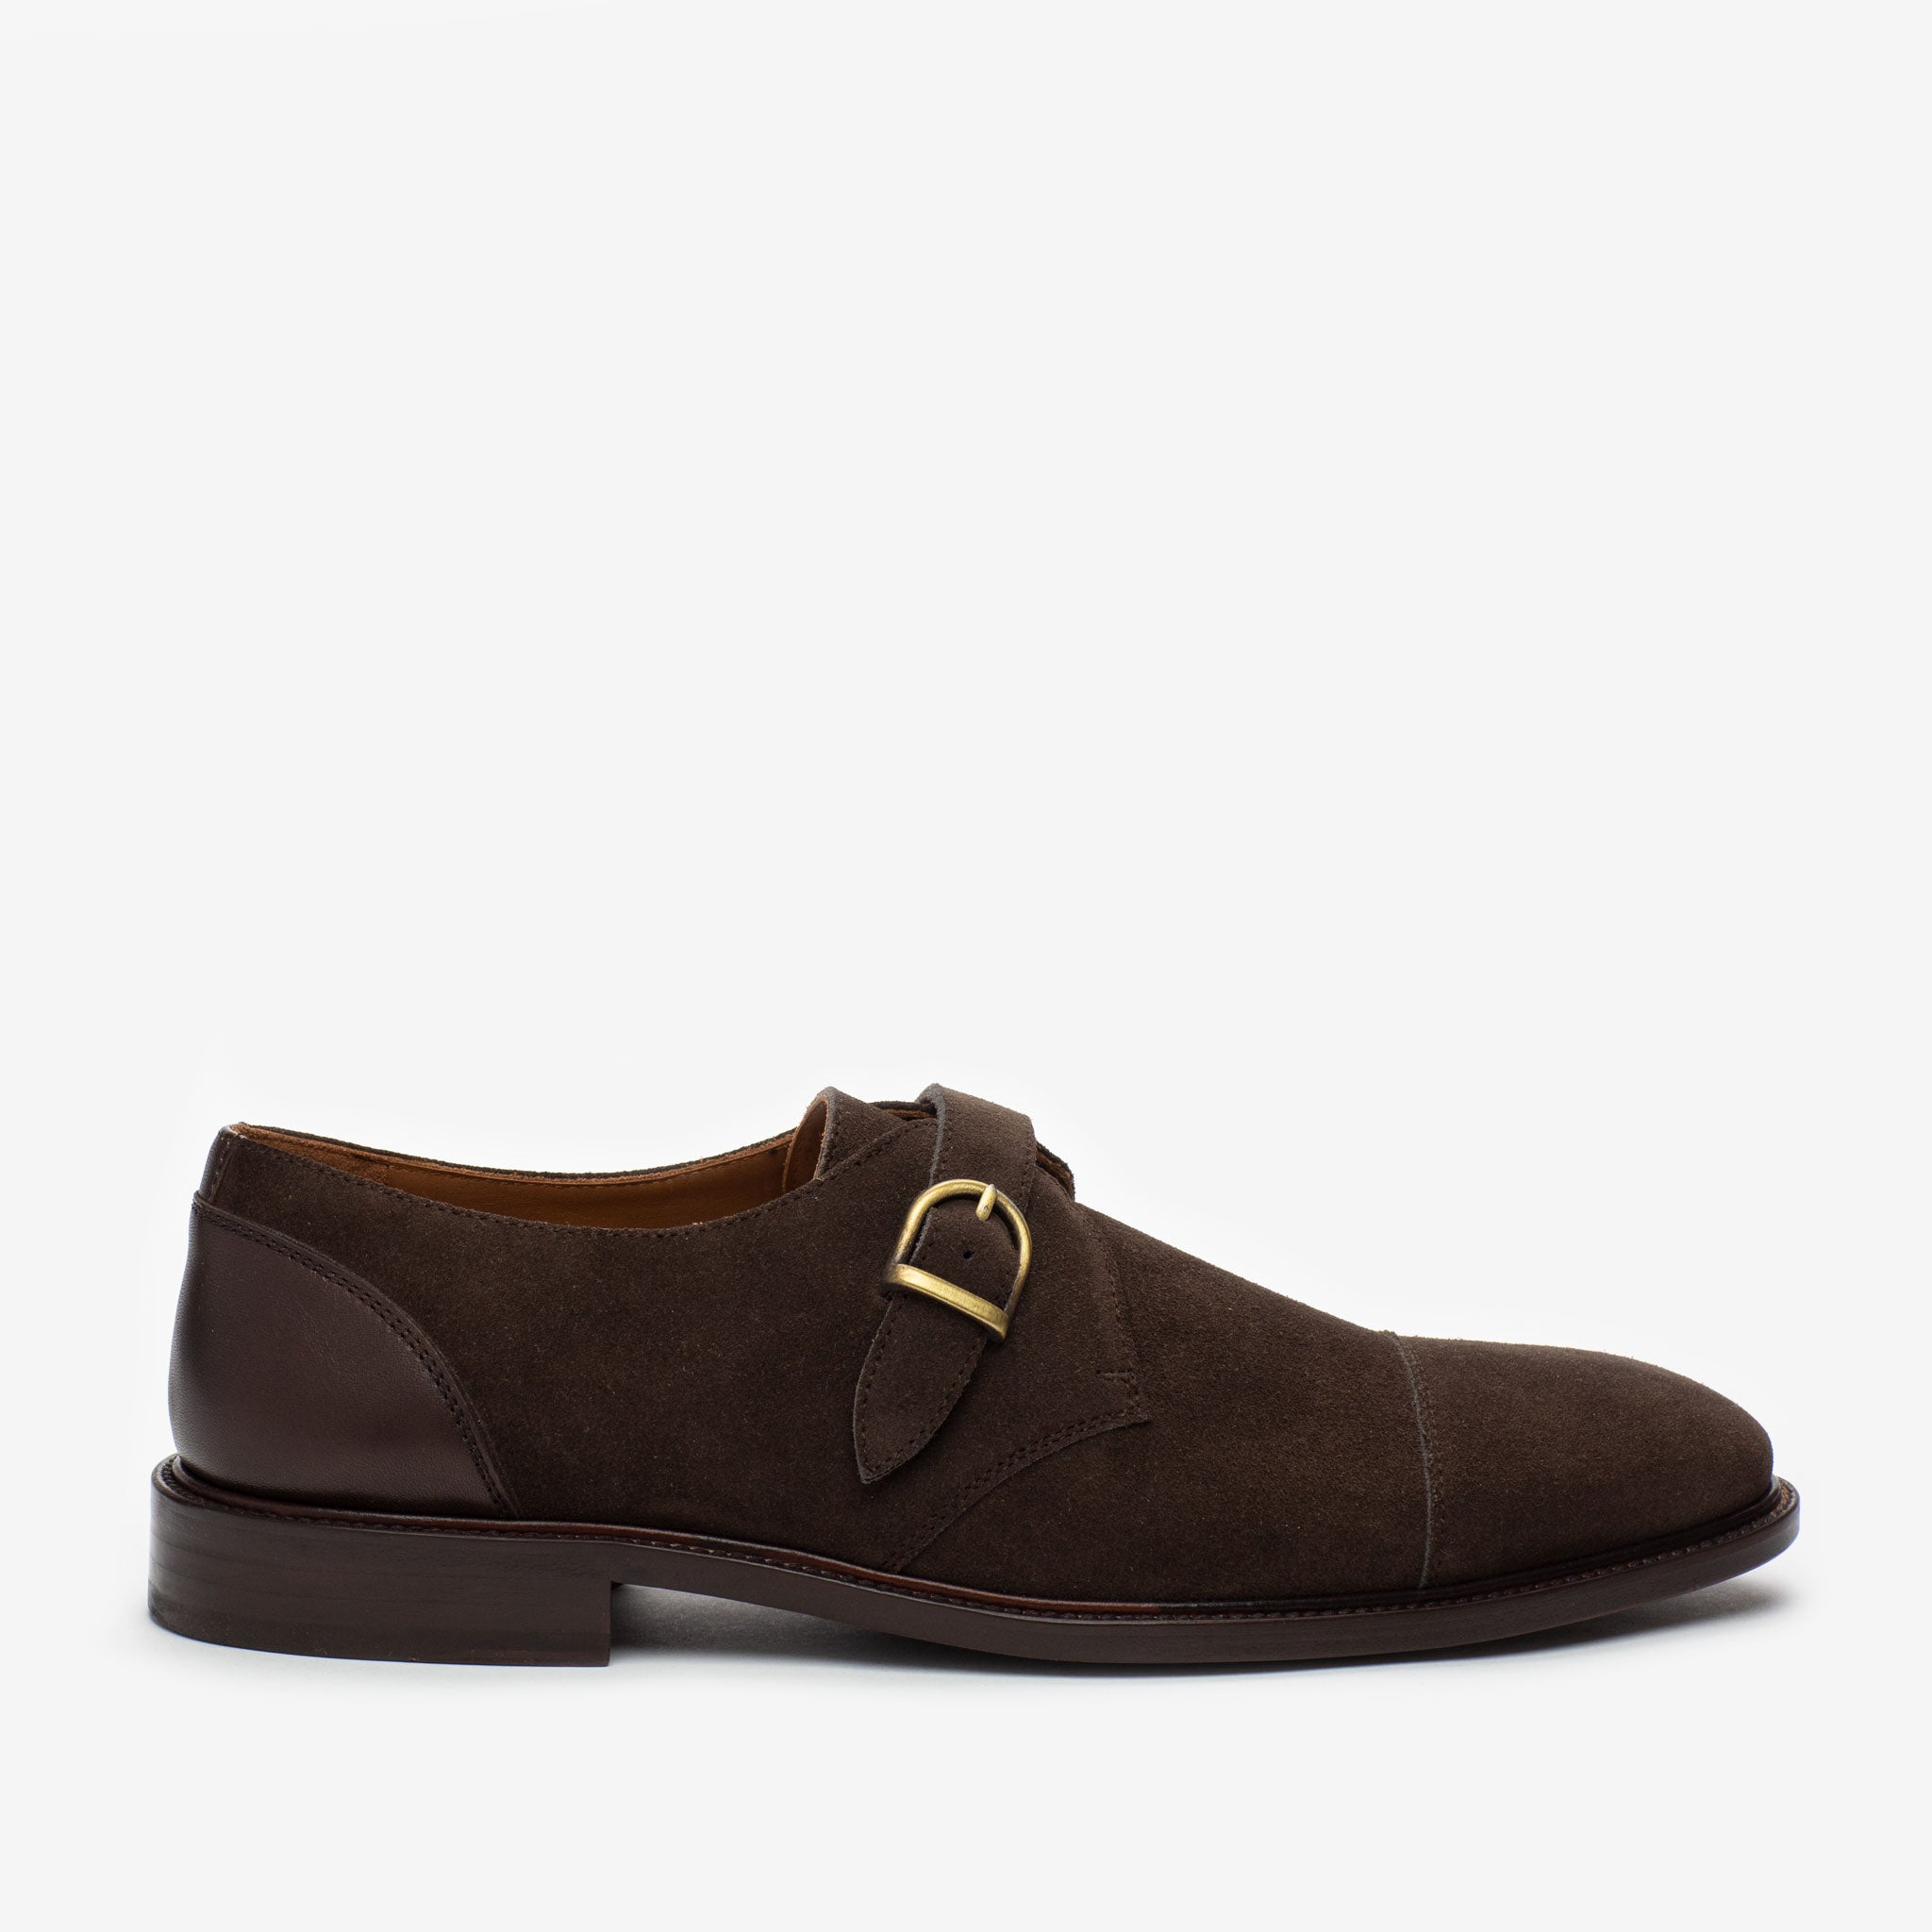 The Westminster Shoe in Chocolate